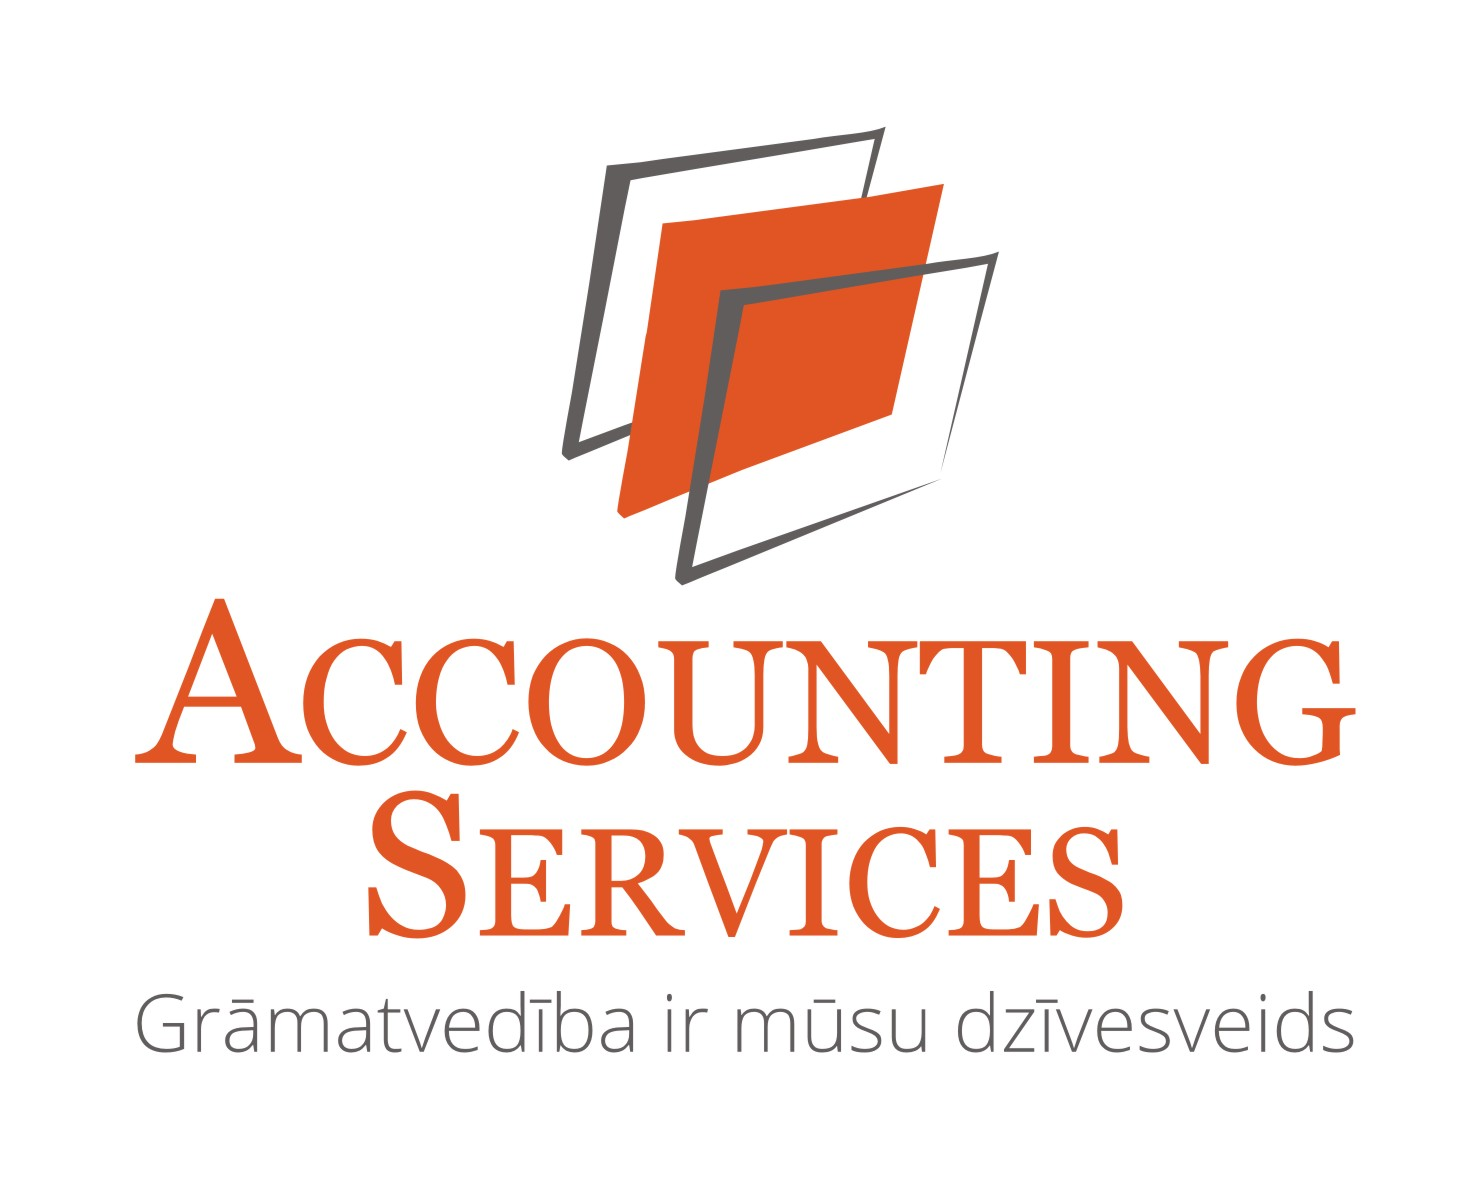 ACCOUNTING SERVICES, SIA